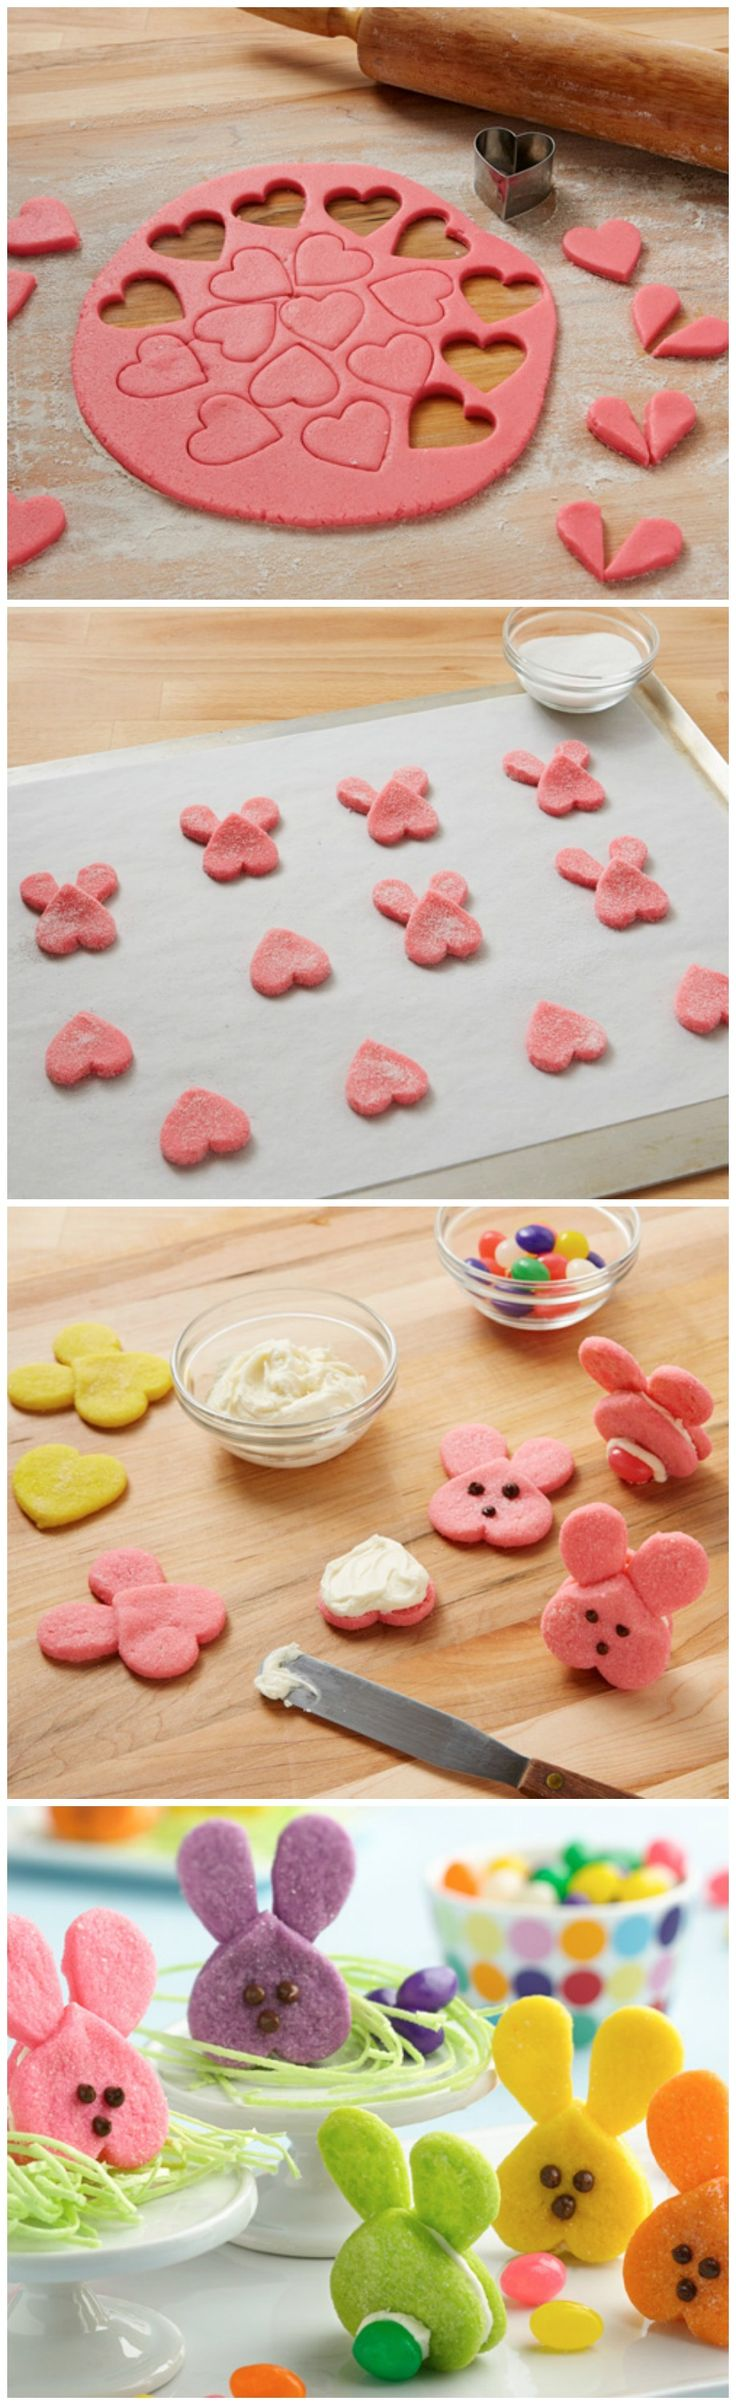 ~.Bunny Sandwich Cookies ~ Cute and colourful, these bunny sandwich cookies are as adorable from the back as they are from the front~.